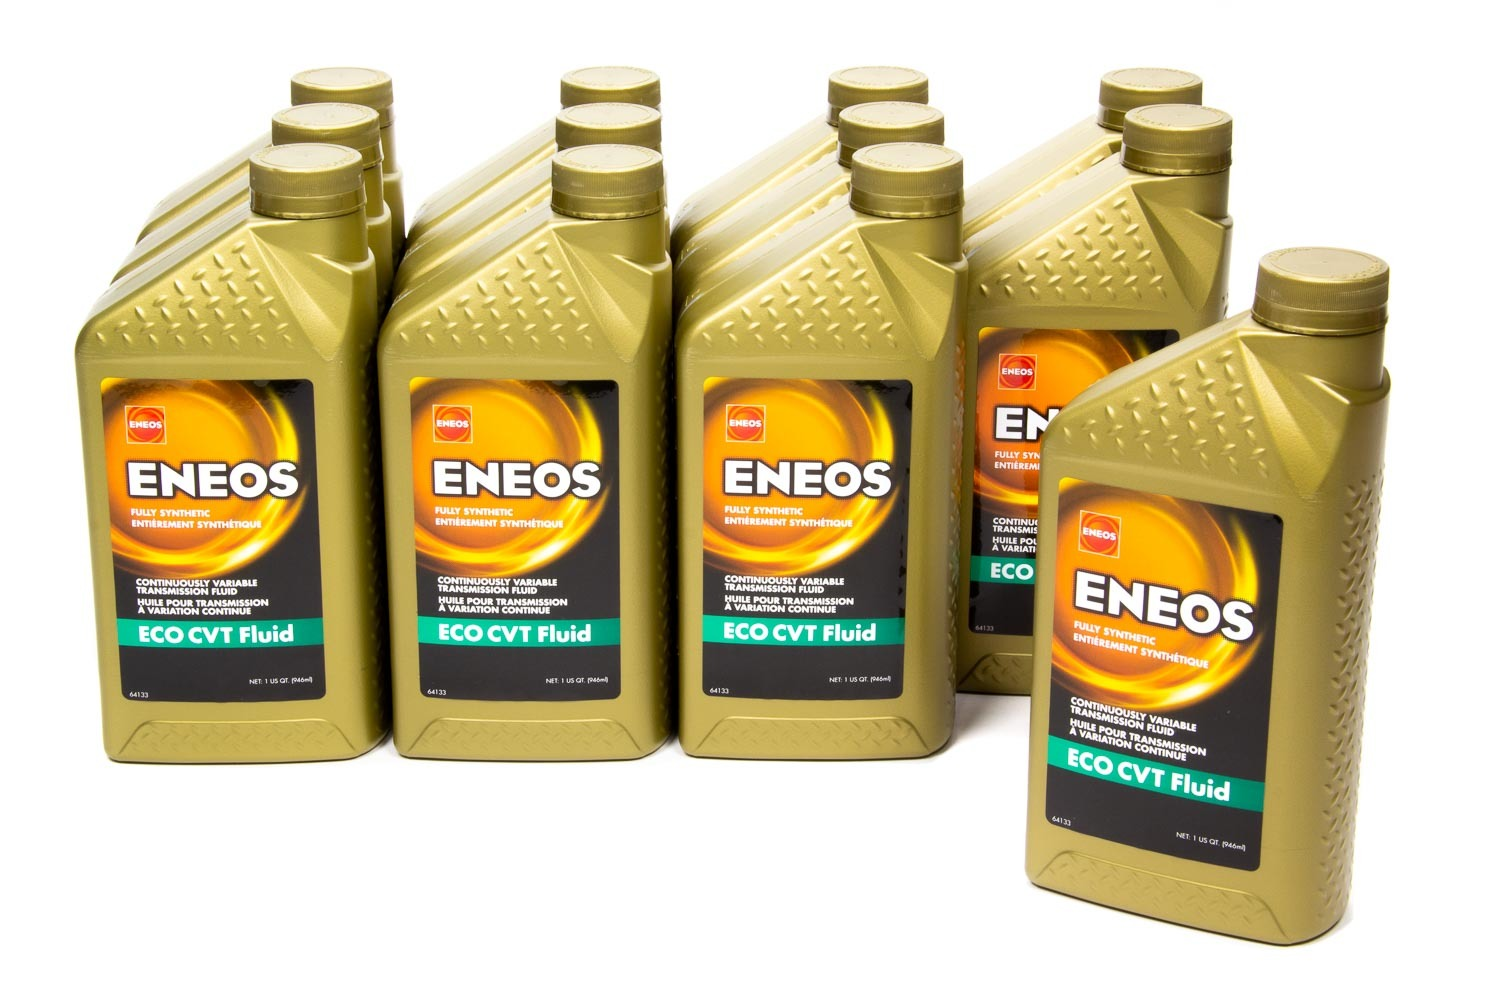 Eneos 3026-301 Transmission Fluid, CVT, Synthetic, 1 qt Bottle, Continuously Variable Transmissions, Set of 12